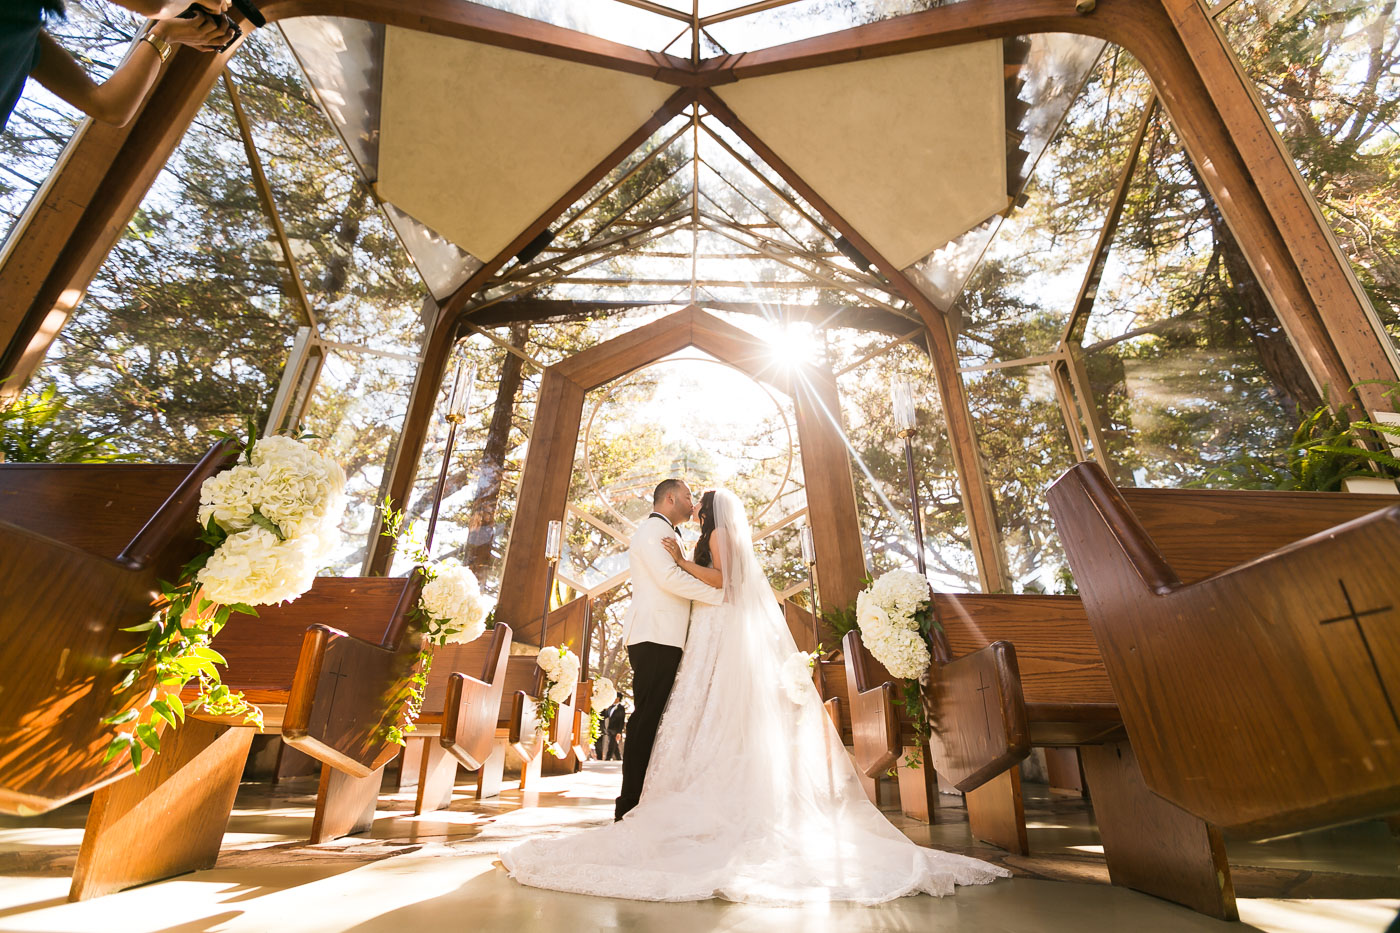 22_Los_Angeles_Wayfarers_Chapel_Wedding_Photography_.jpg